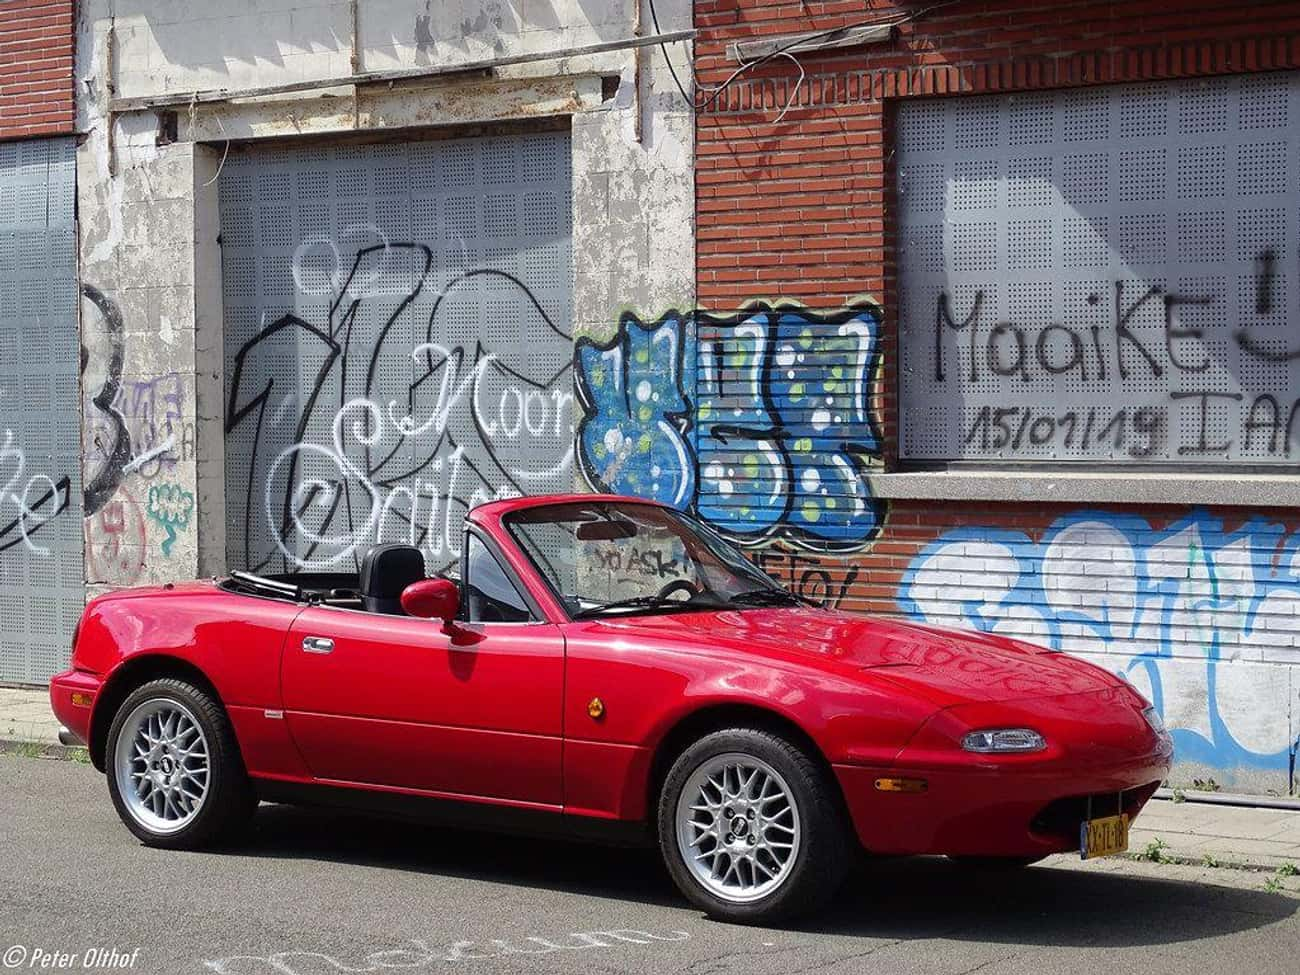 Mazda Miata is listed (or ranked) 1 on the list The Best Project Cars For Beginners And Expert Mechanics